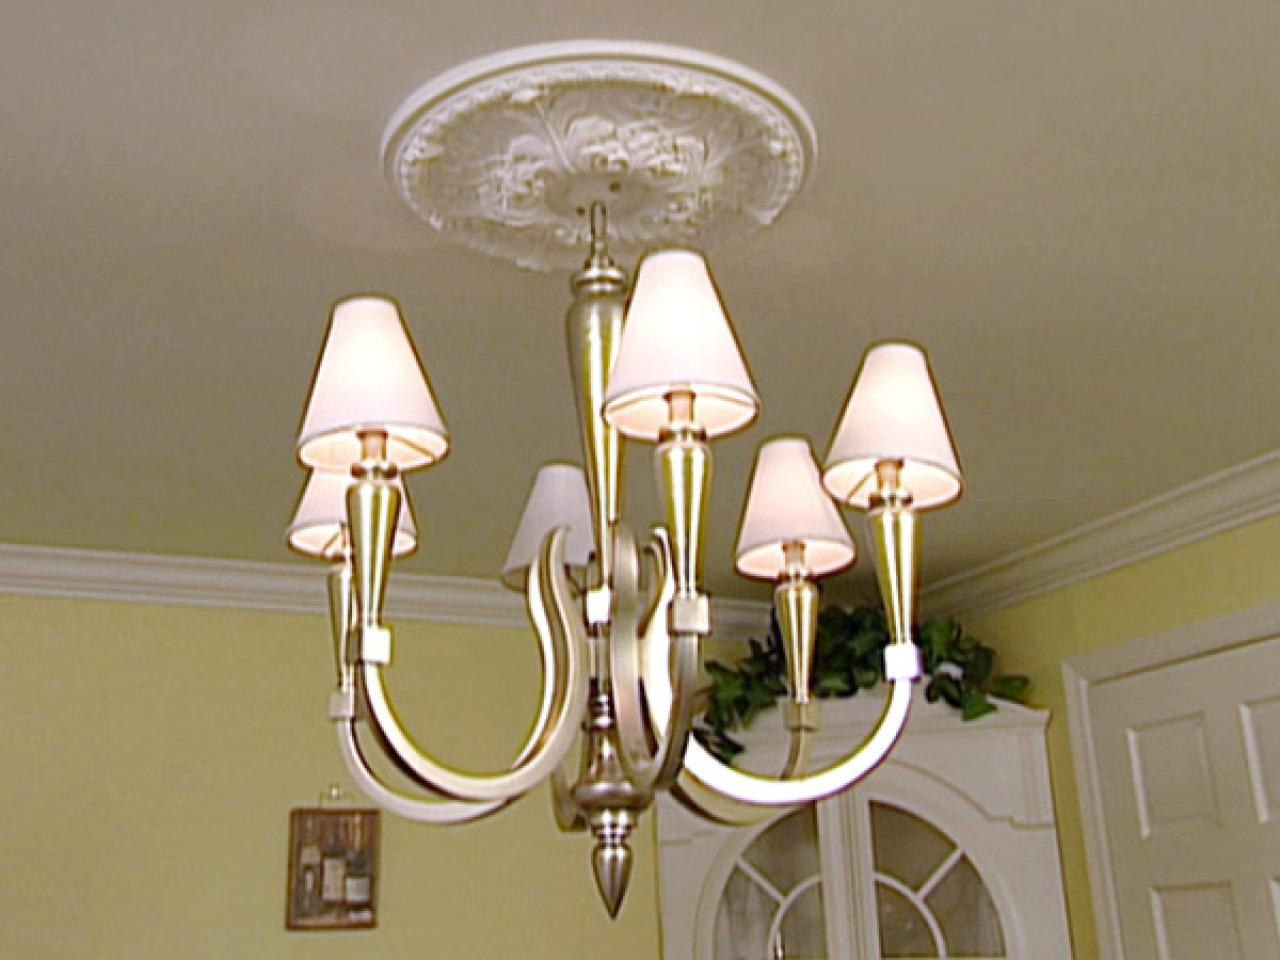 for design medallion elegant chandeliers unique improbable ceiling decorative ceilings home dlrn medallions chandelier ideas contemporary with extraordinary molding